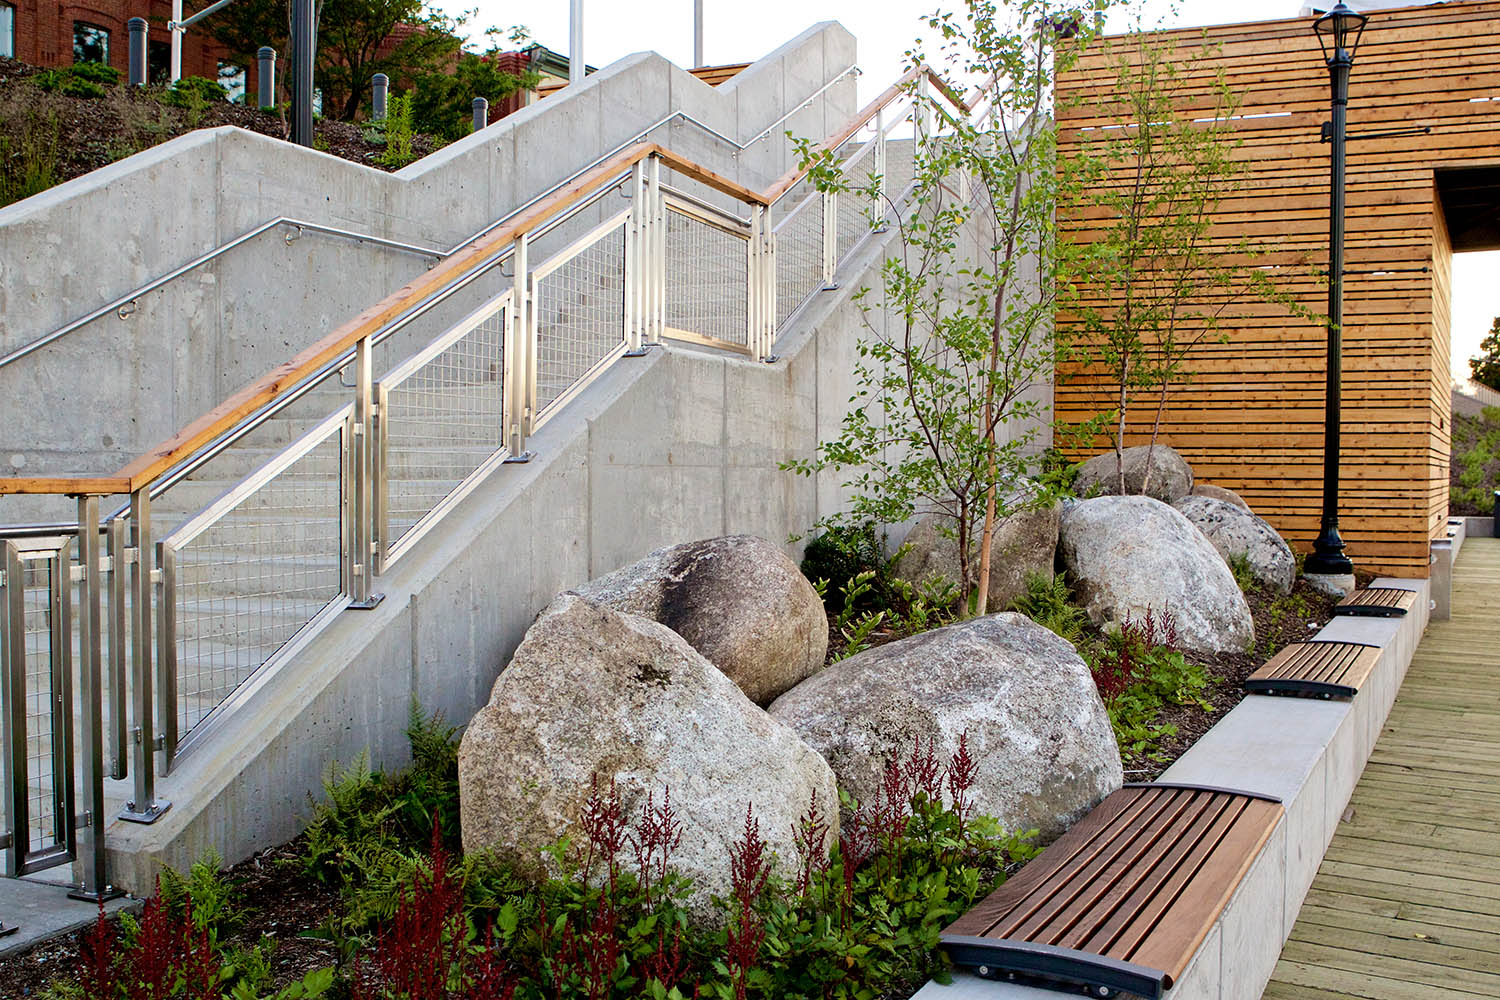 Gardens and benches bring life and activity to the previously inaccessible waterfront.